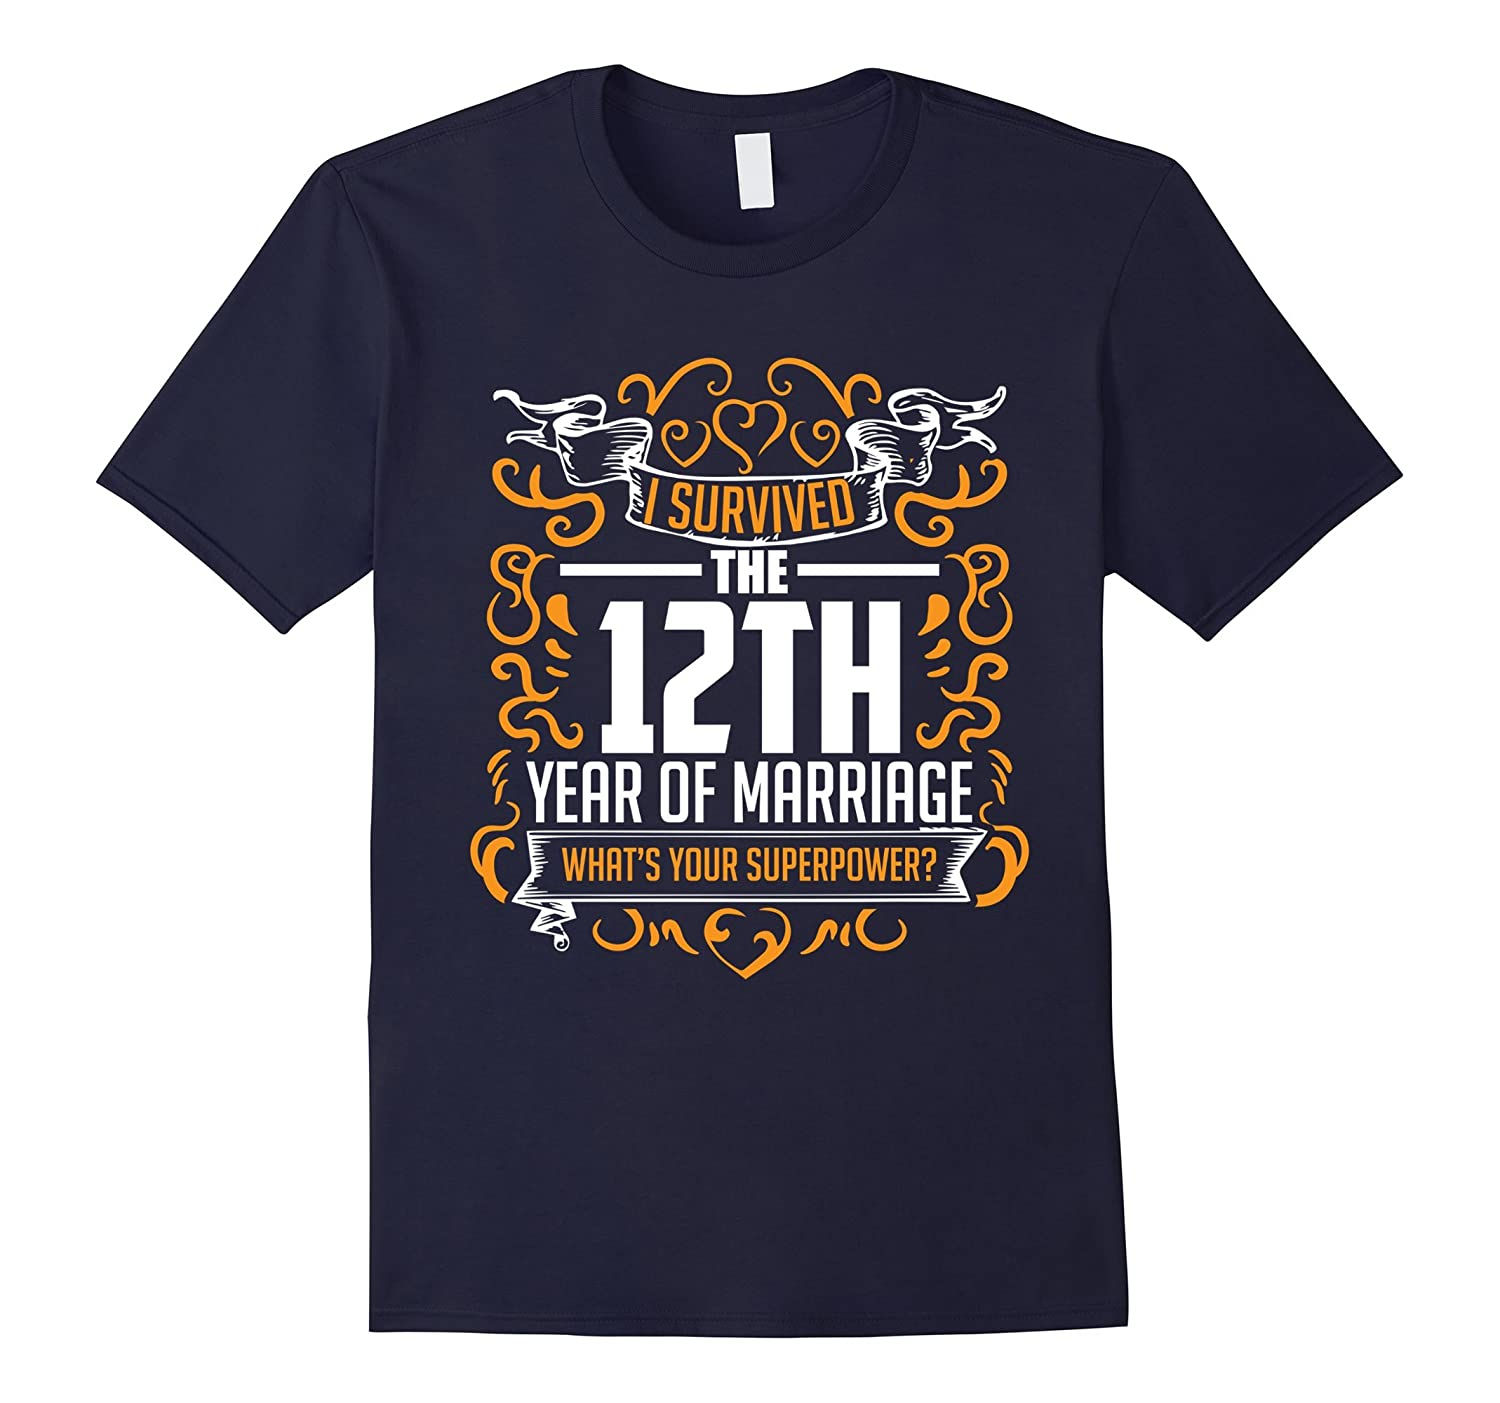 Wedding Gifts 12 Year Anniversary : Home / 12th Wedding Anniversary Gifts 12 Year T Shirt For Her and Him